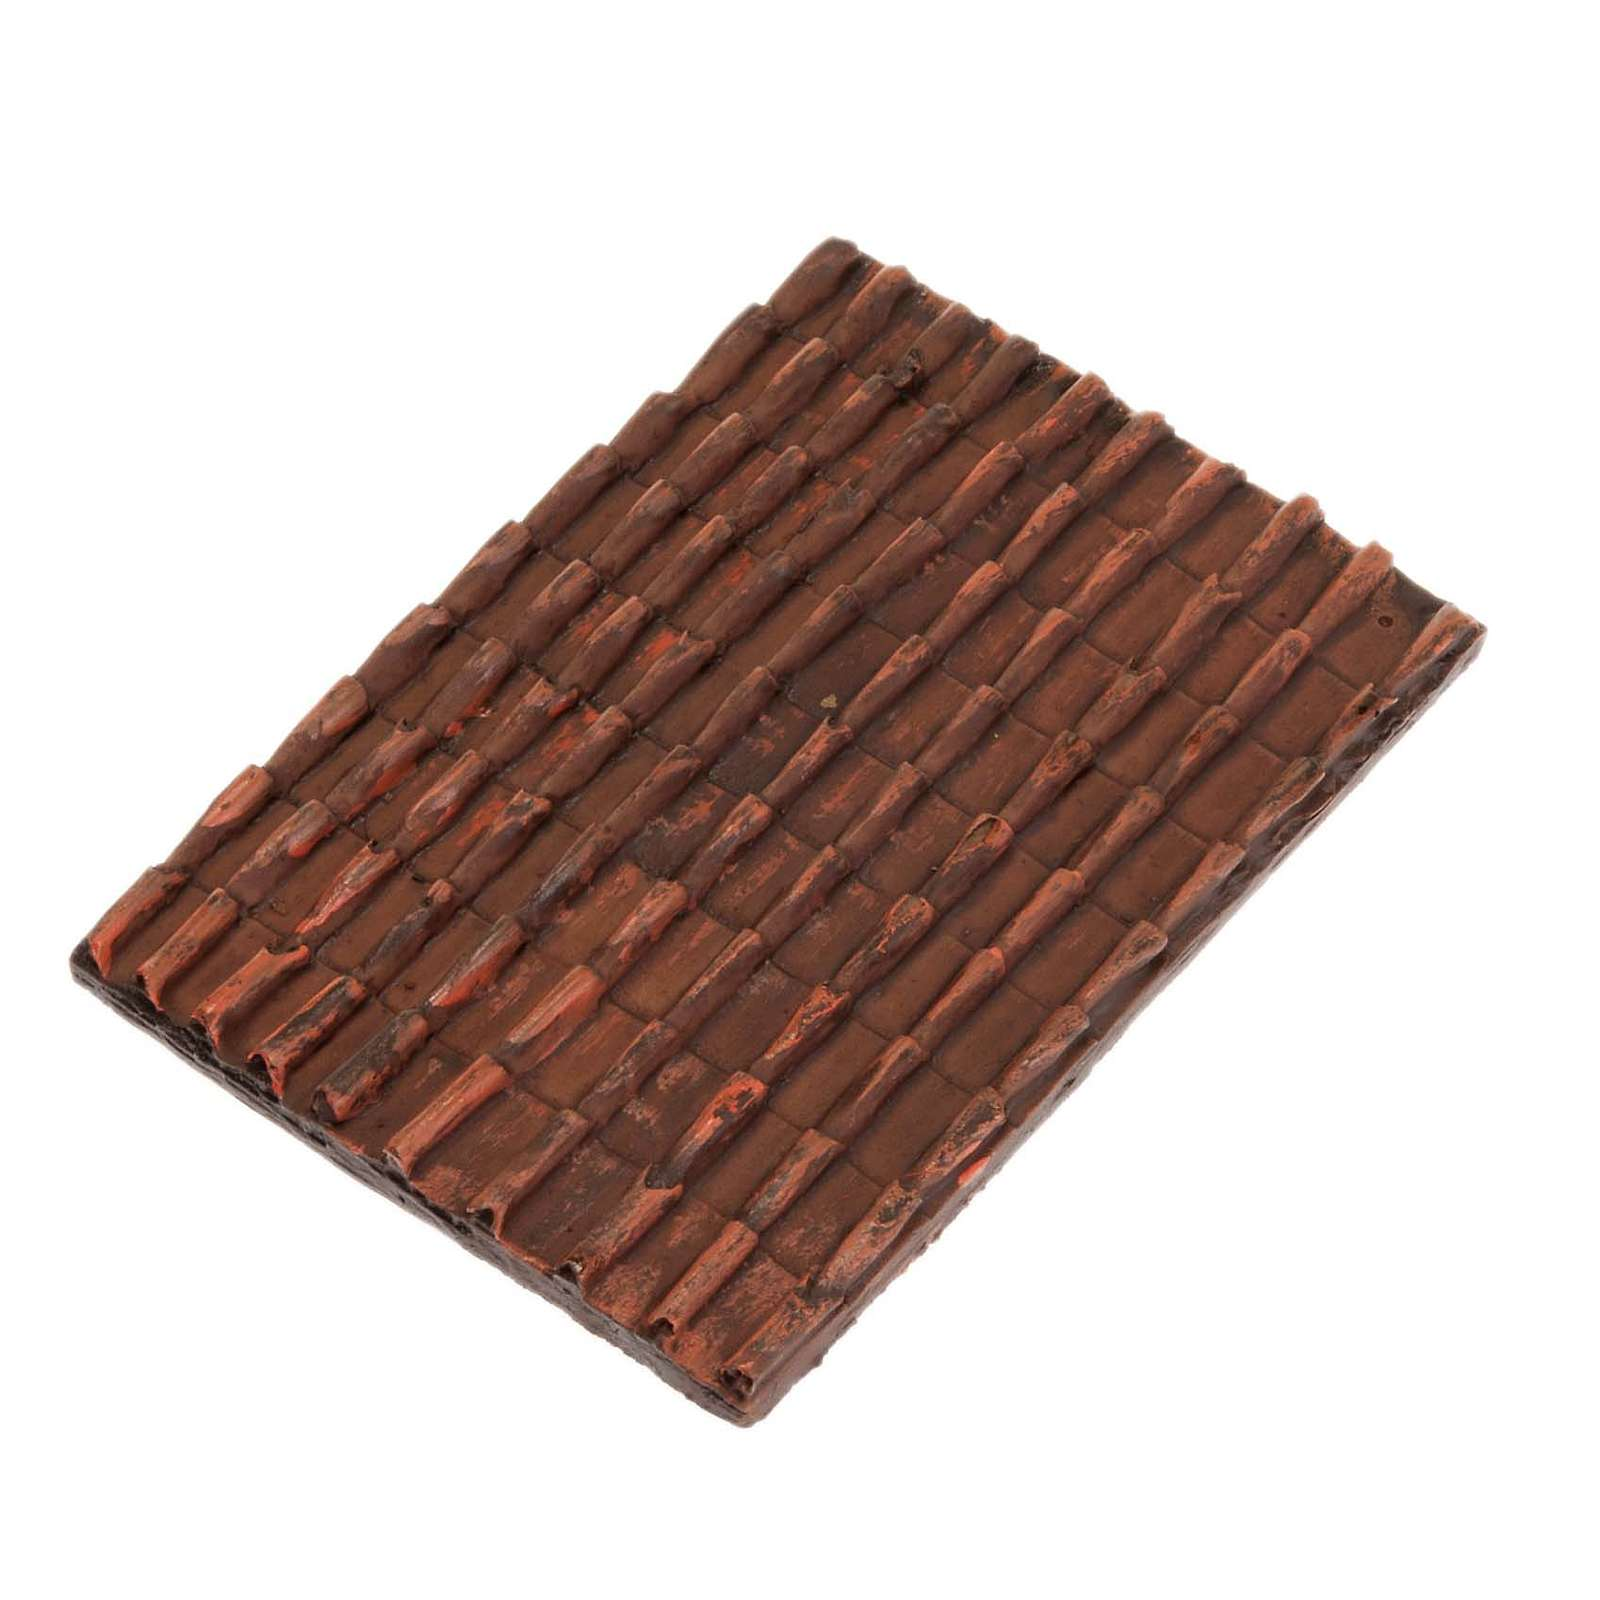 Nativity accessory, roof with red tiles for do-it-yourself nativ 4